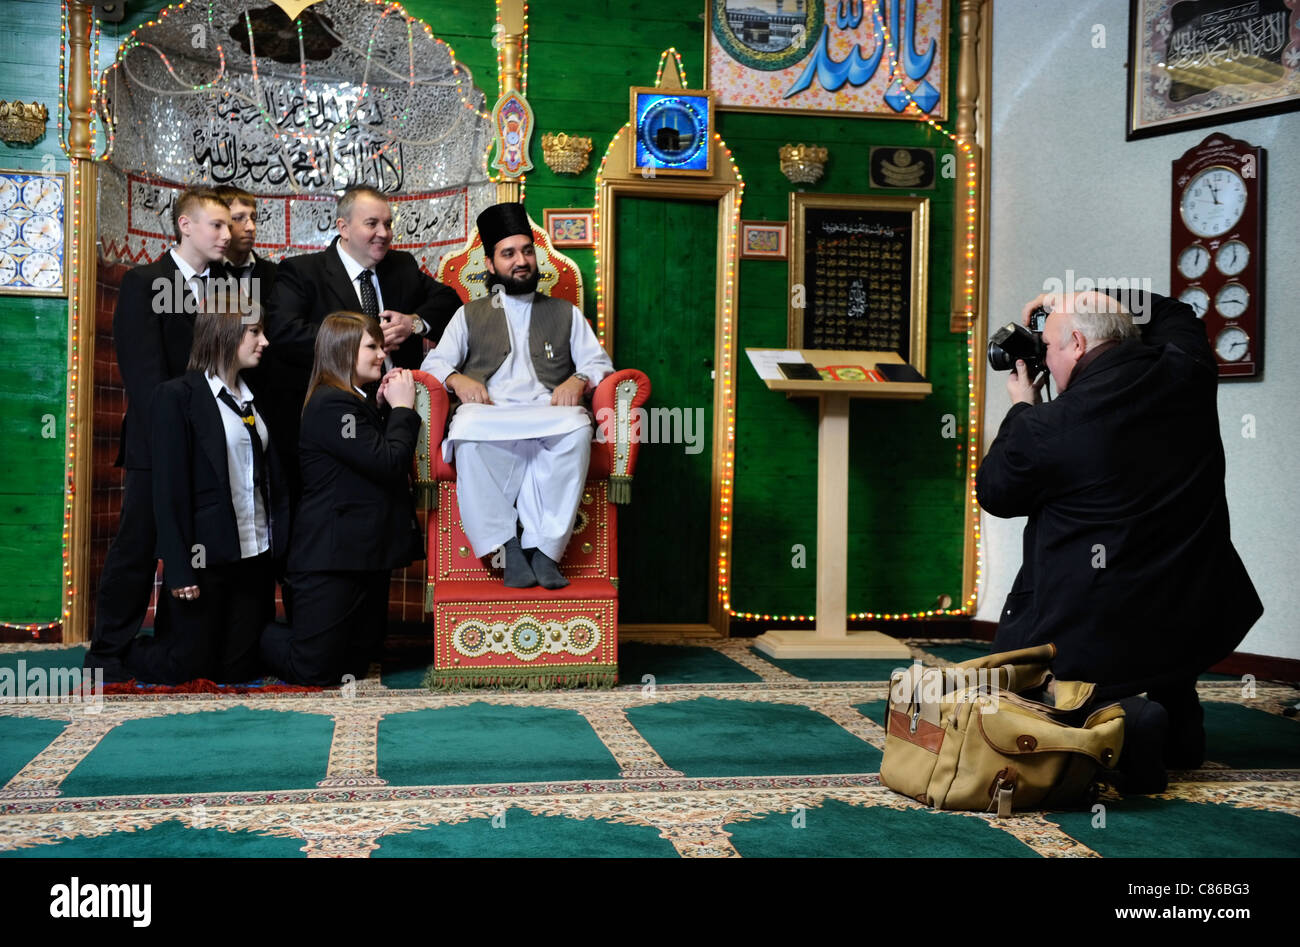 Children from Mitchell High School, Stoke-on-Trent are photographed by the local press with Sheik Hanif at Tunstall - Stock Image